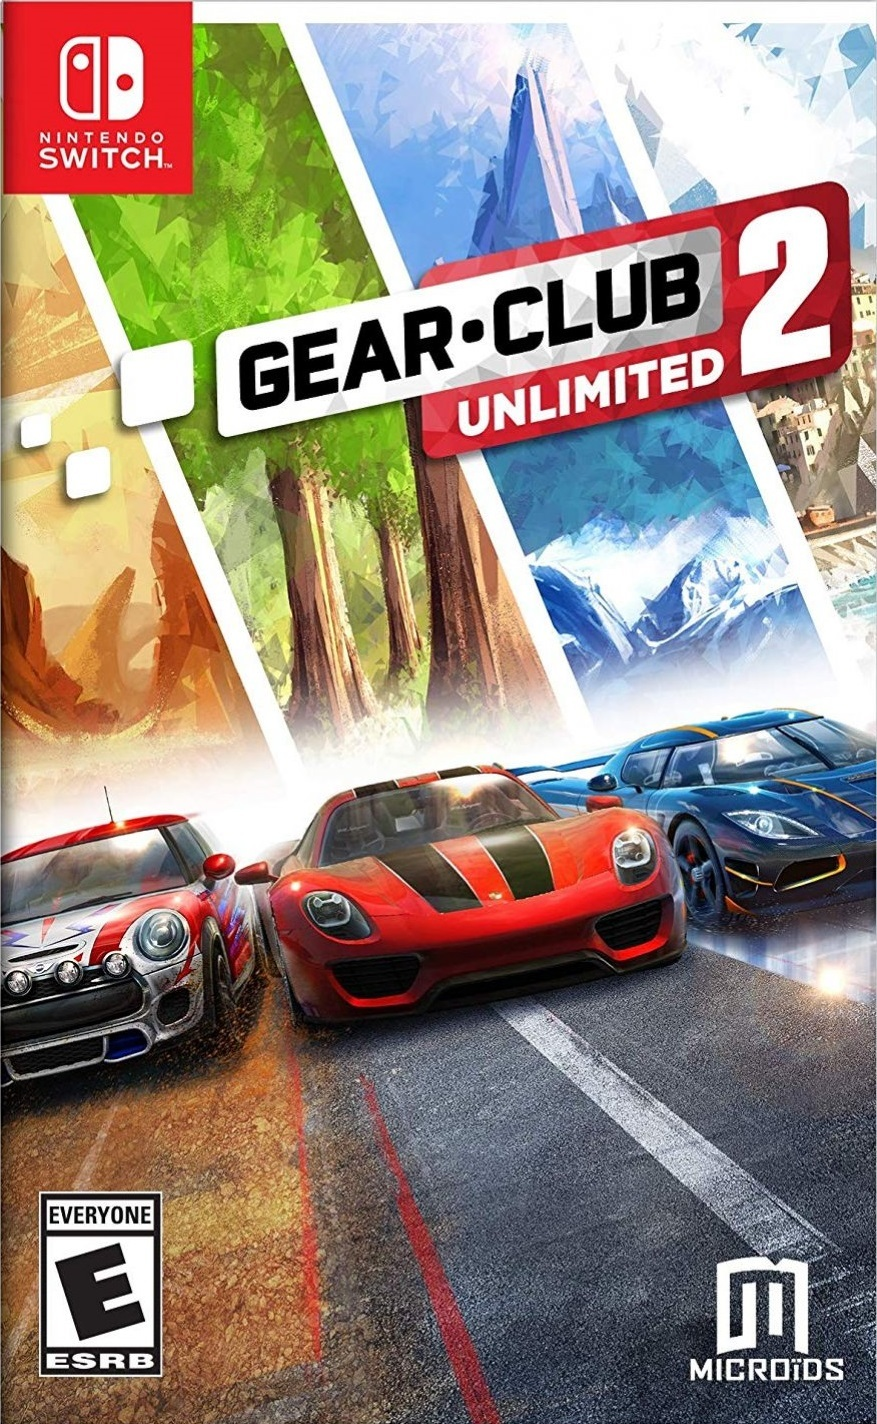 gear-club-unlimited-2-571025.7.jpg